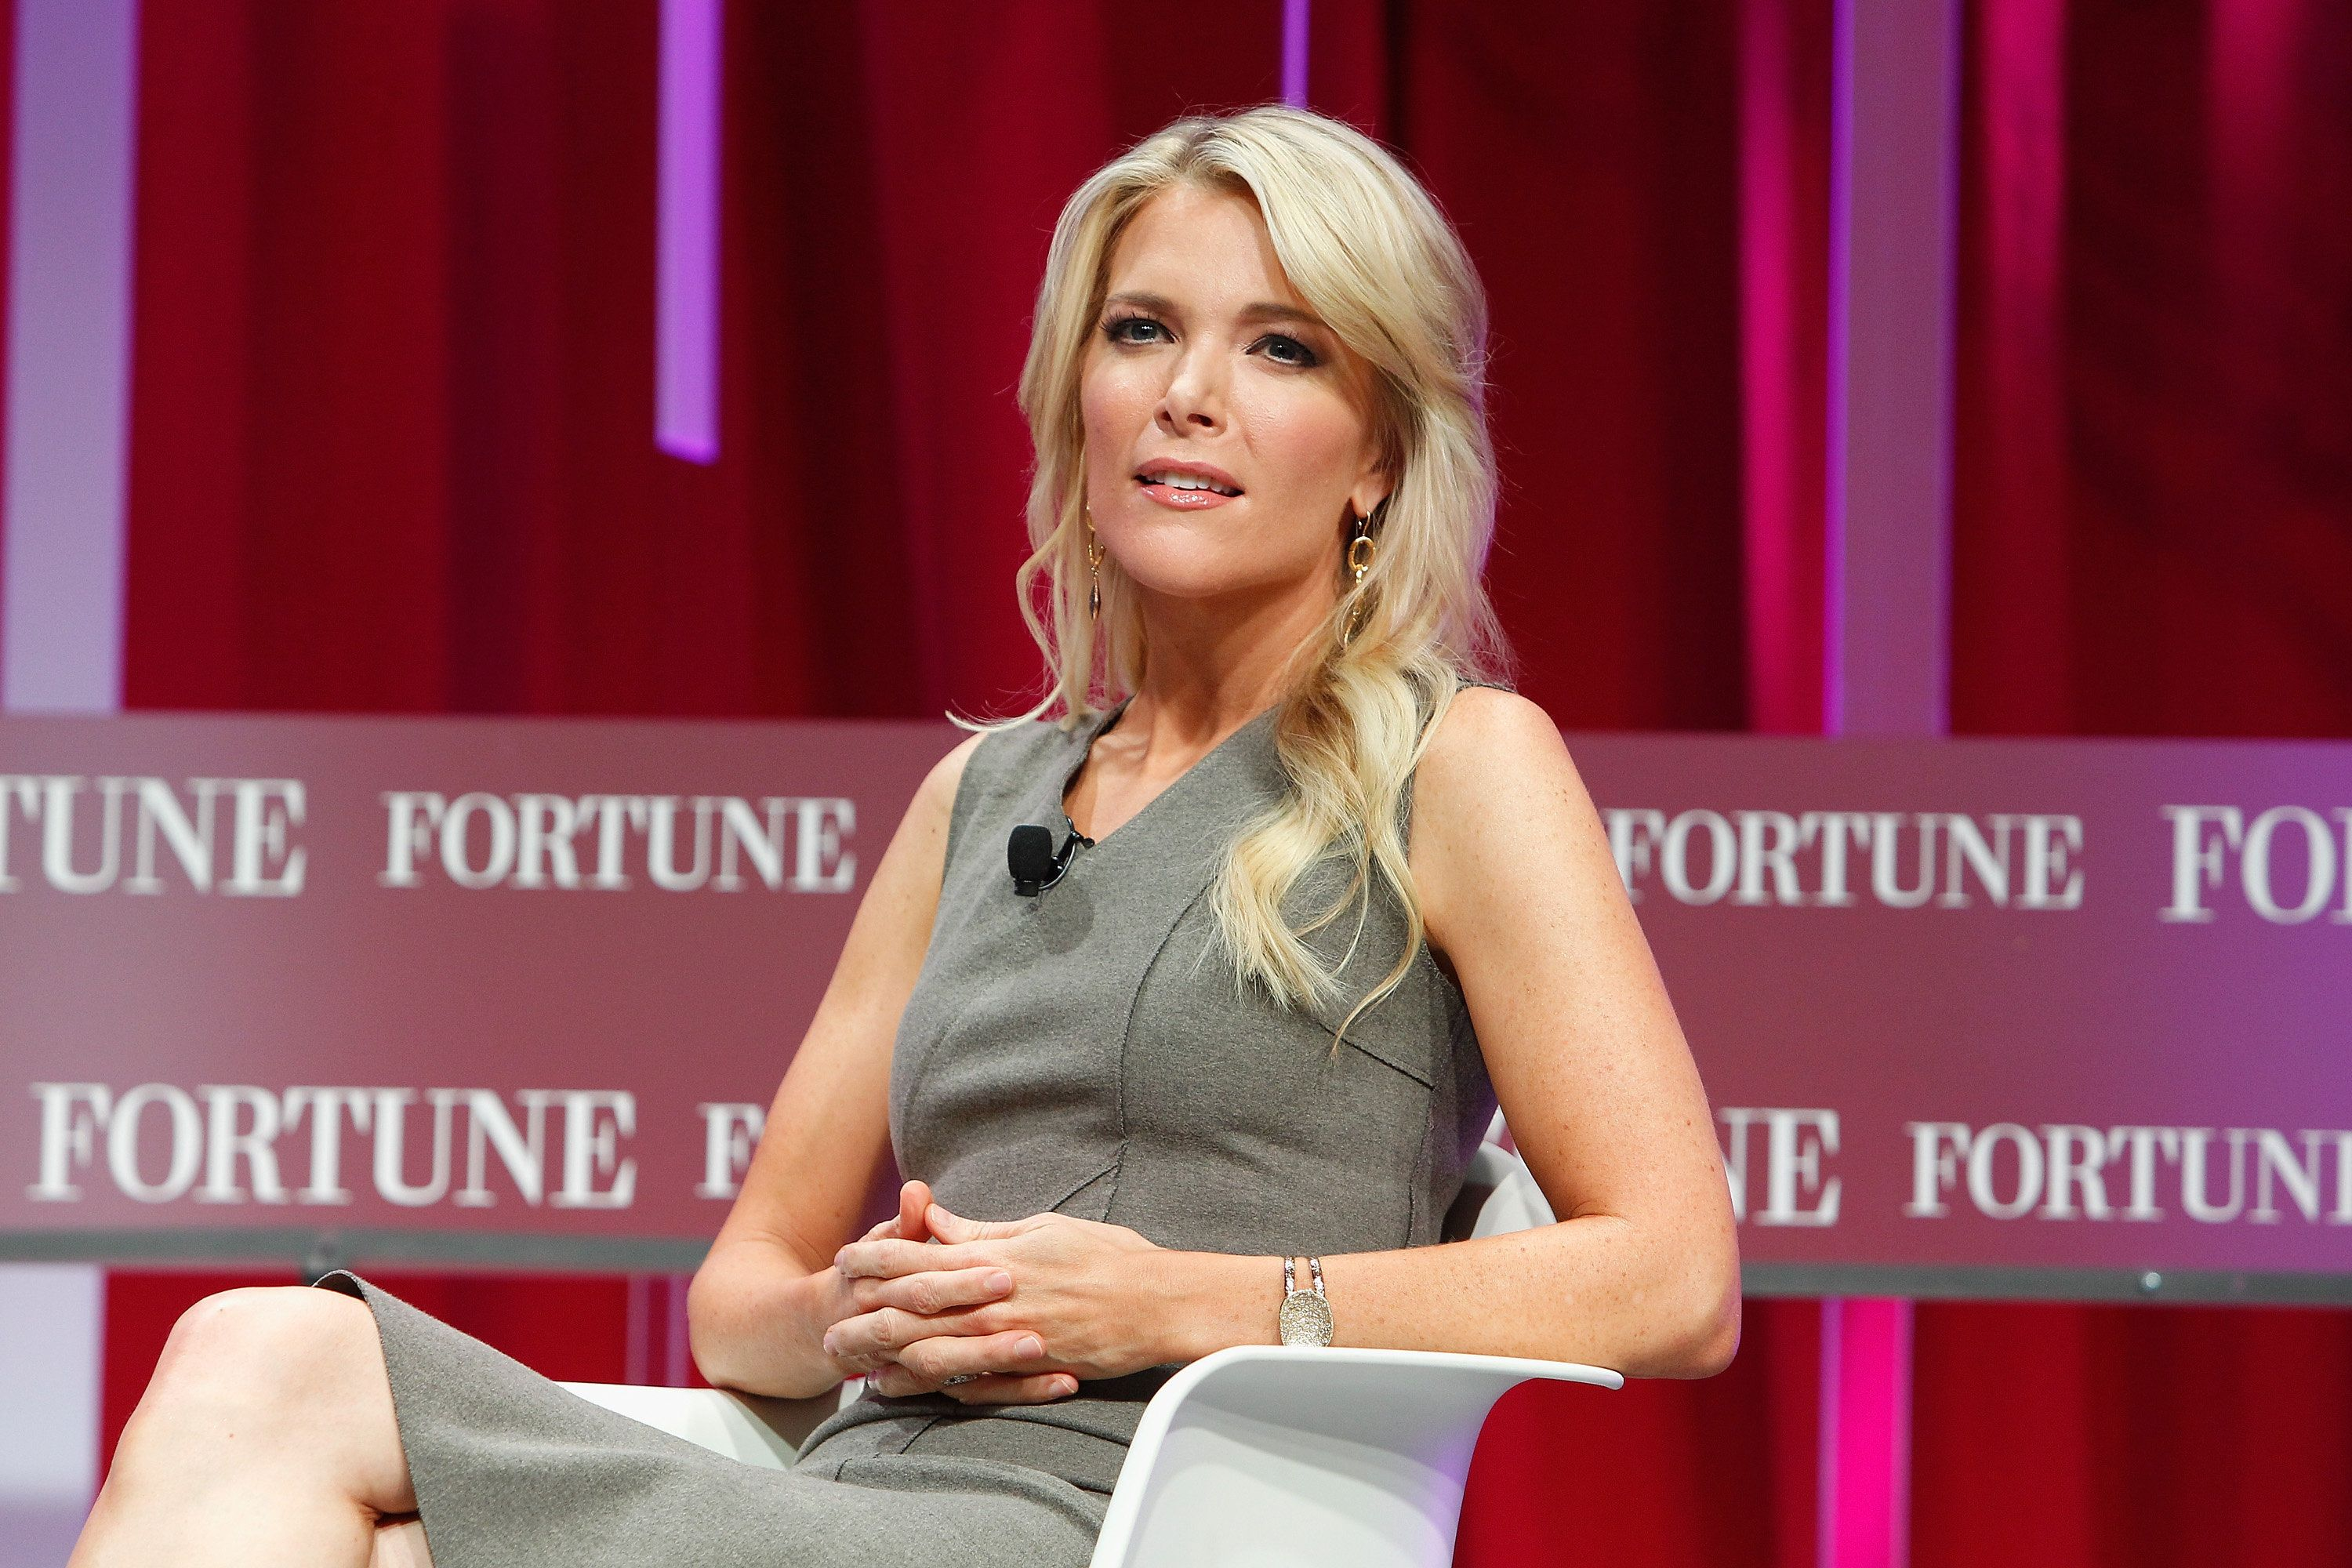 Megyn Kelly has received a whole lot of abuse online from Trump fans.